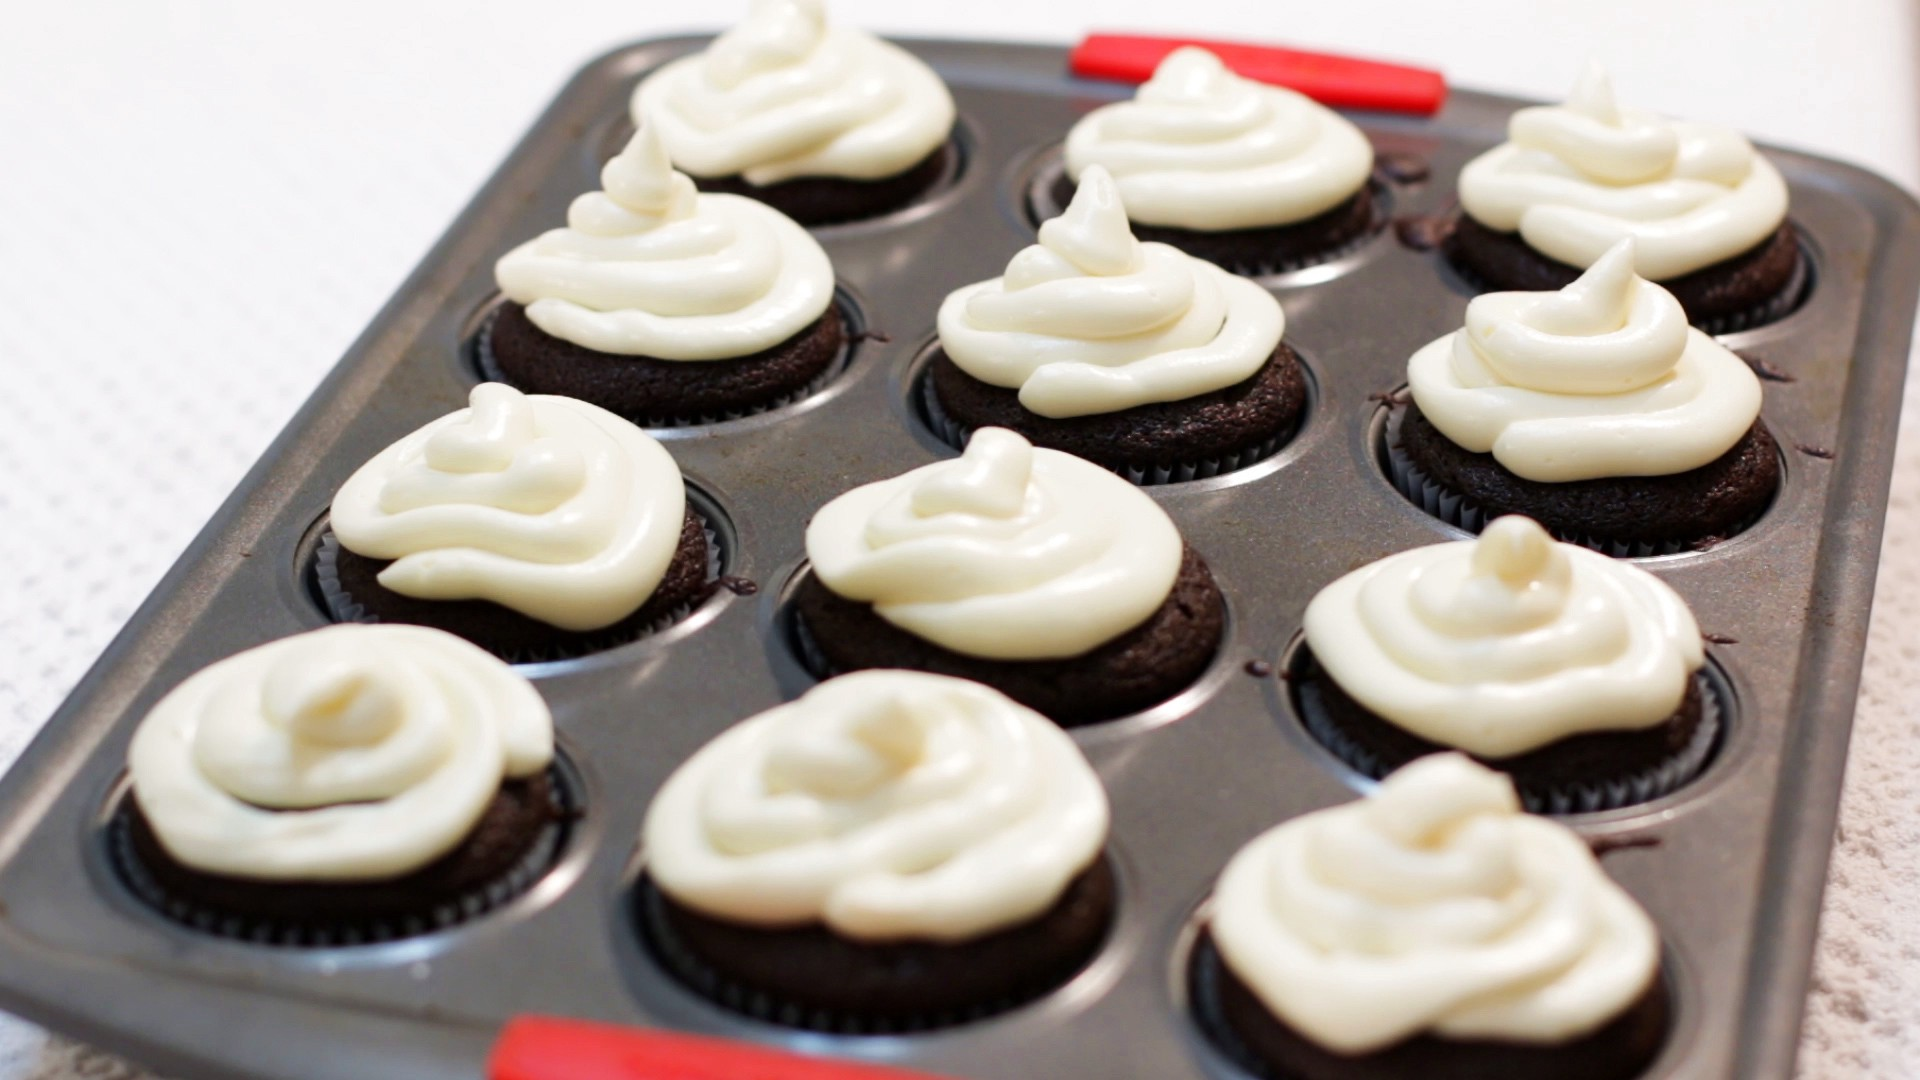 Chocolate Cupcakes with Cream Cheese Frosting - Matt Taylor